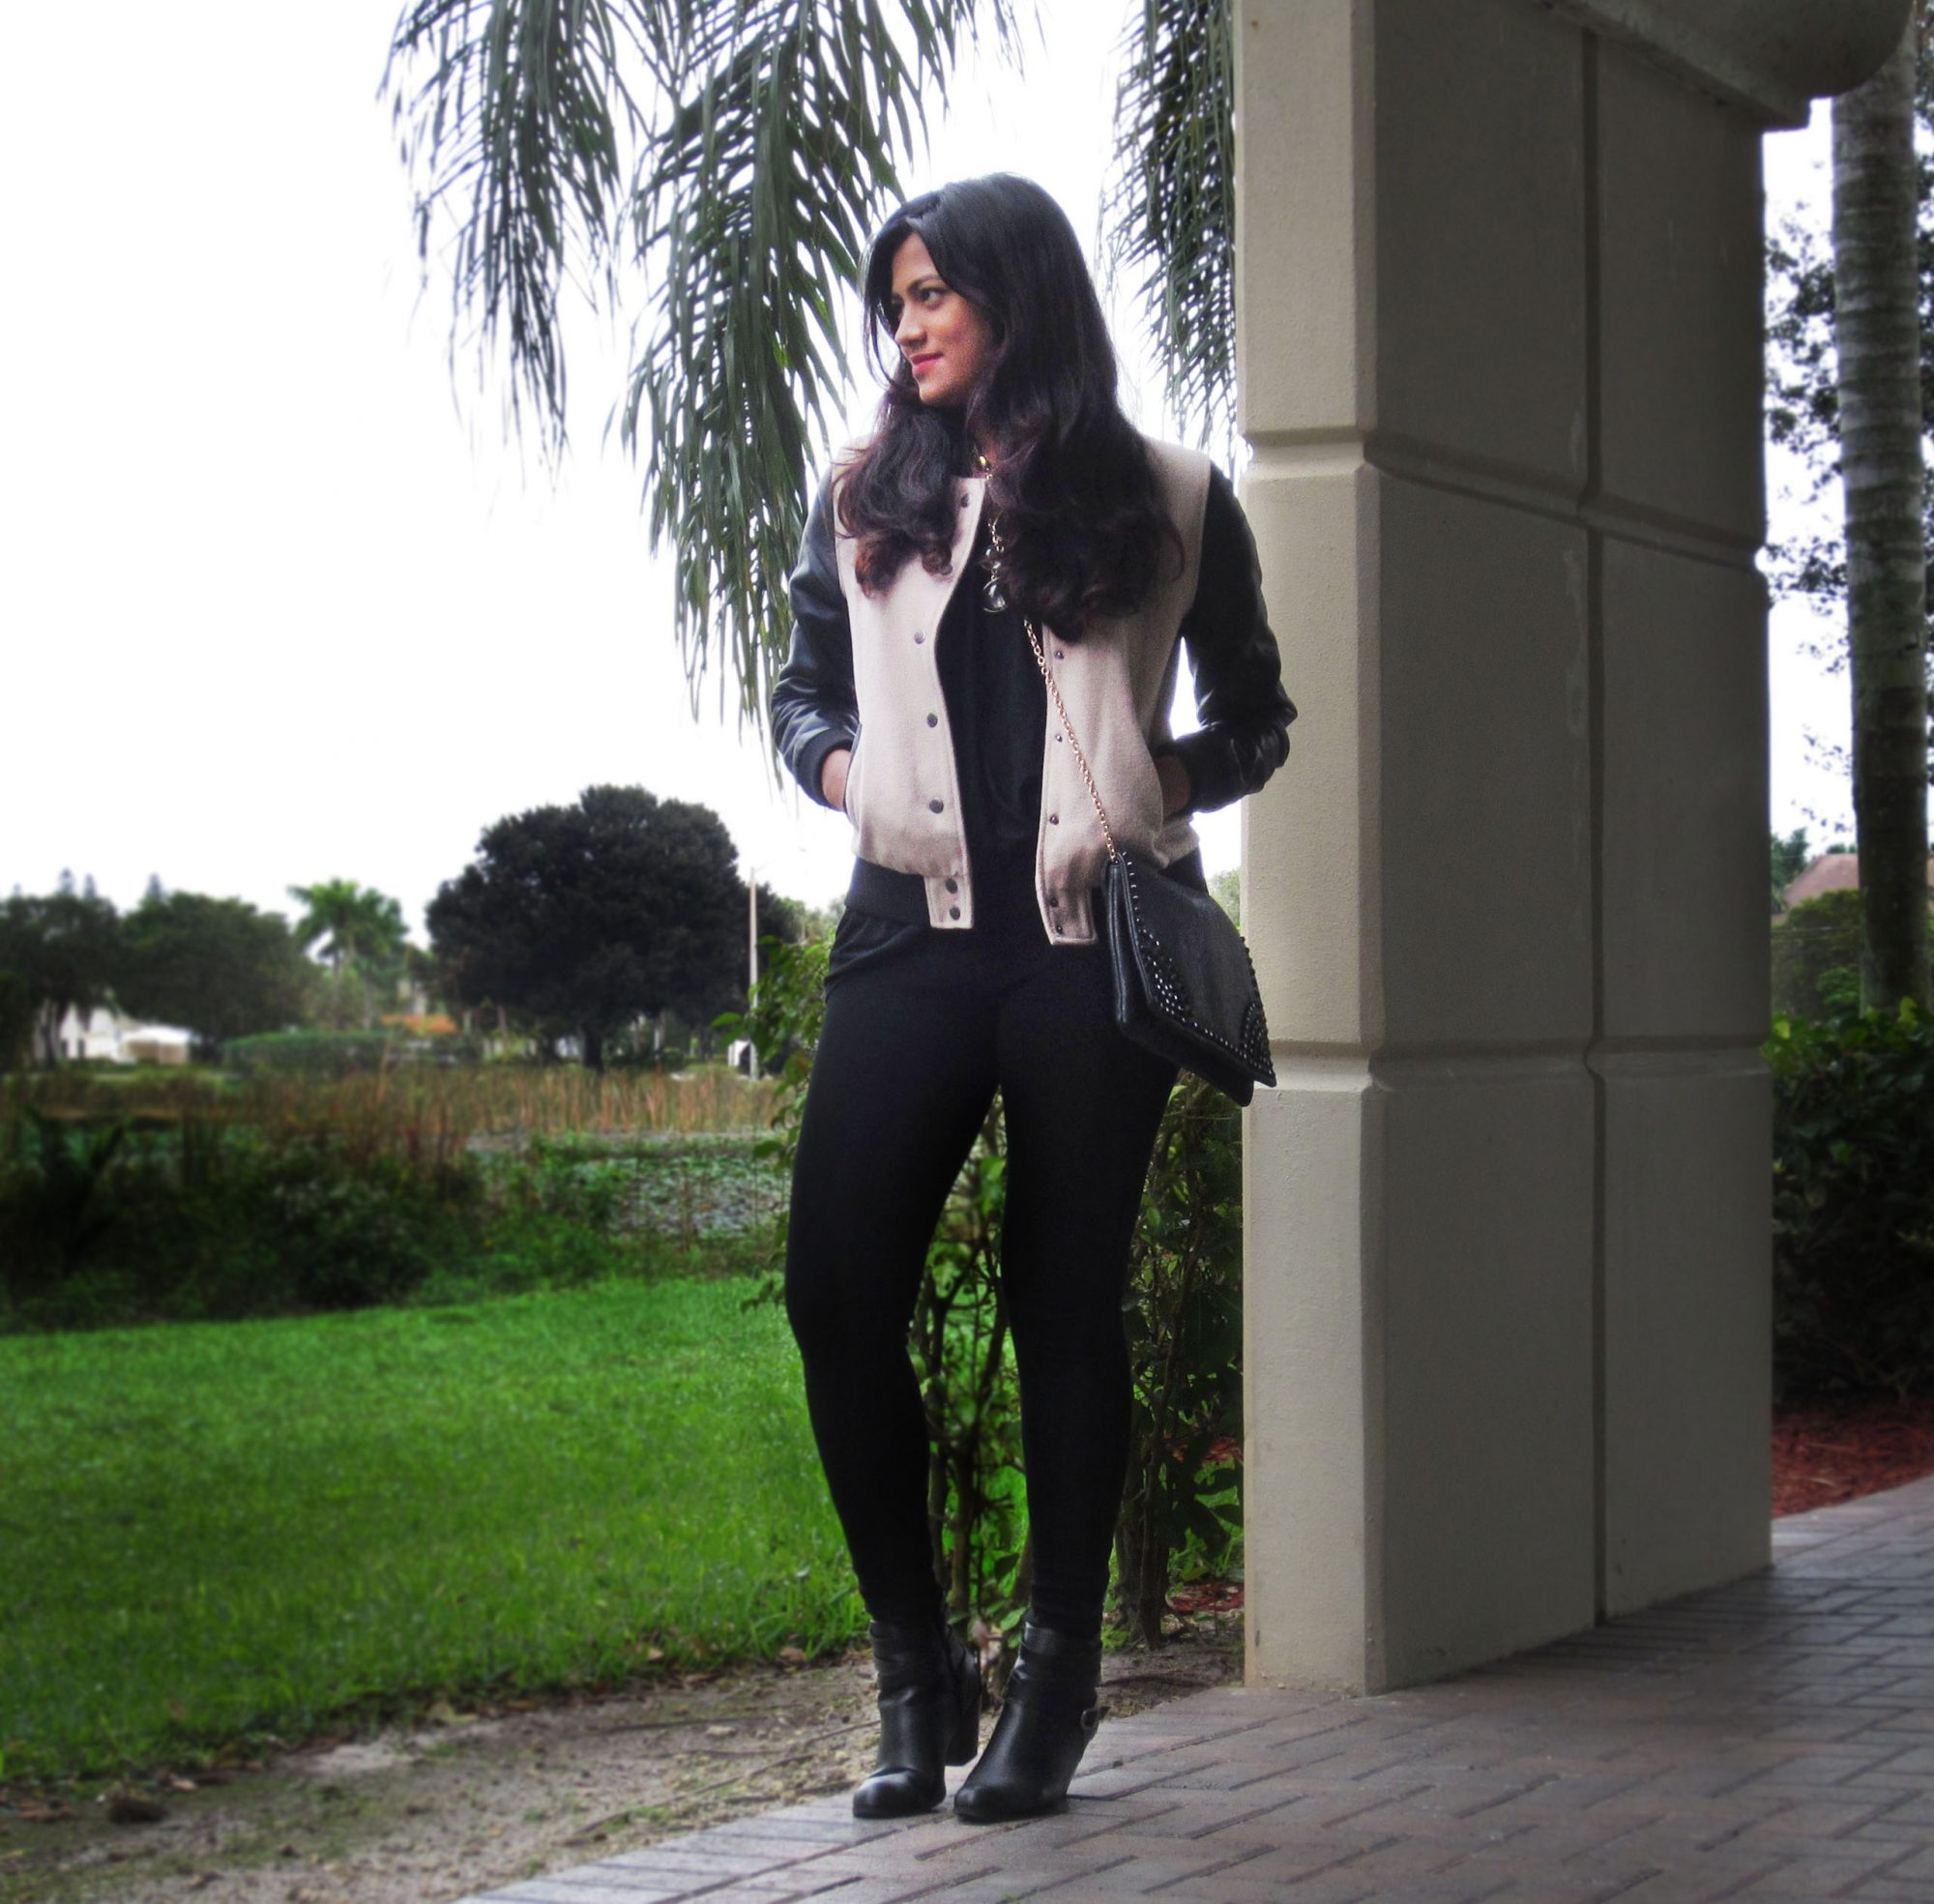 Miami Fashion Blogger Chic Stylista Love1